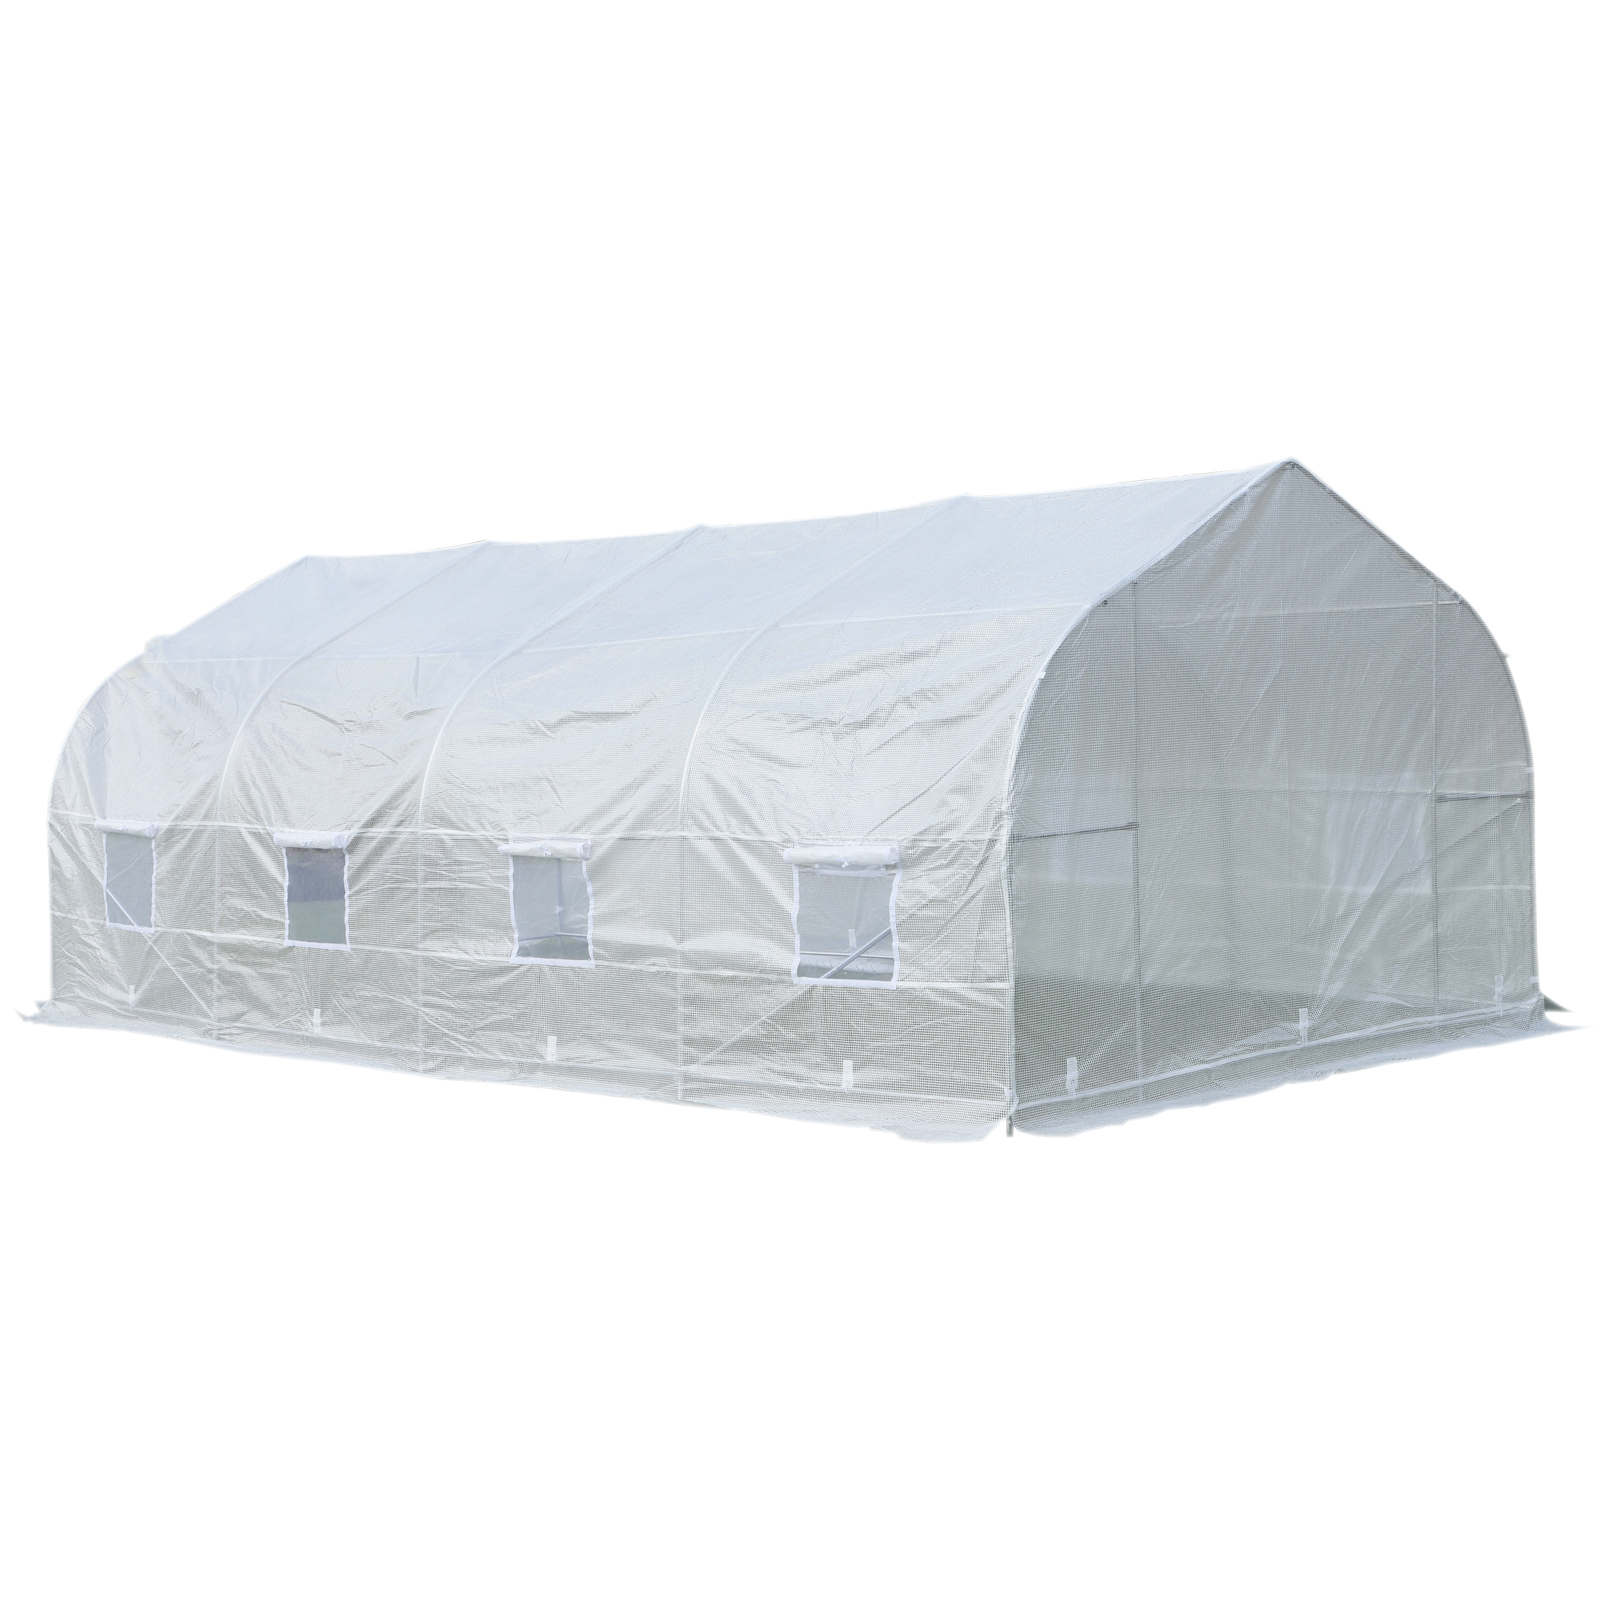 Outsunny-20x10x7ft-Walk-in-Outdoor-Tunnel-Greenhouse-Portable-Backyard-Plant thumbnail 19